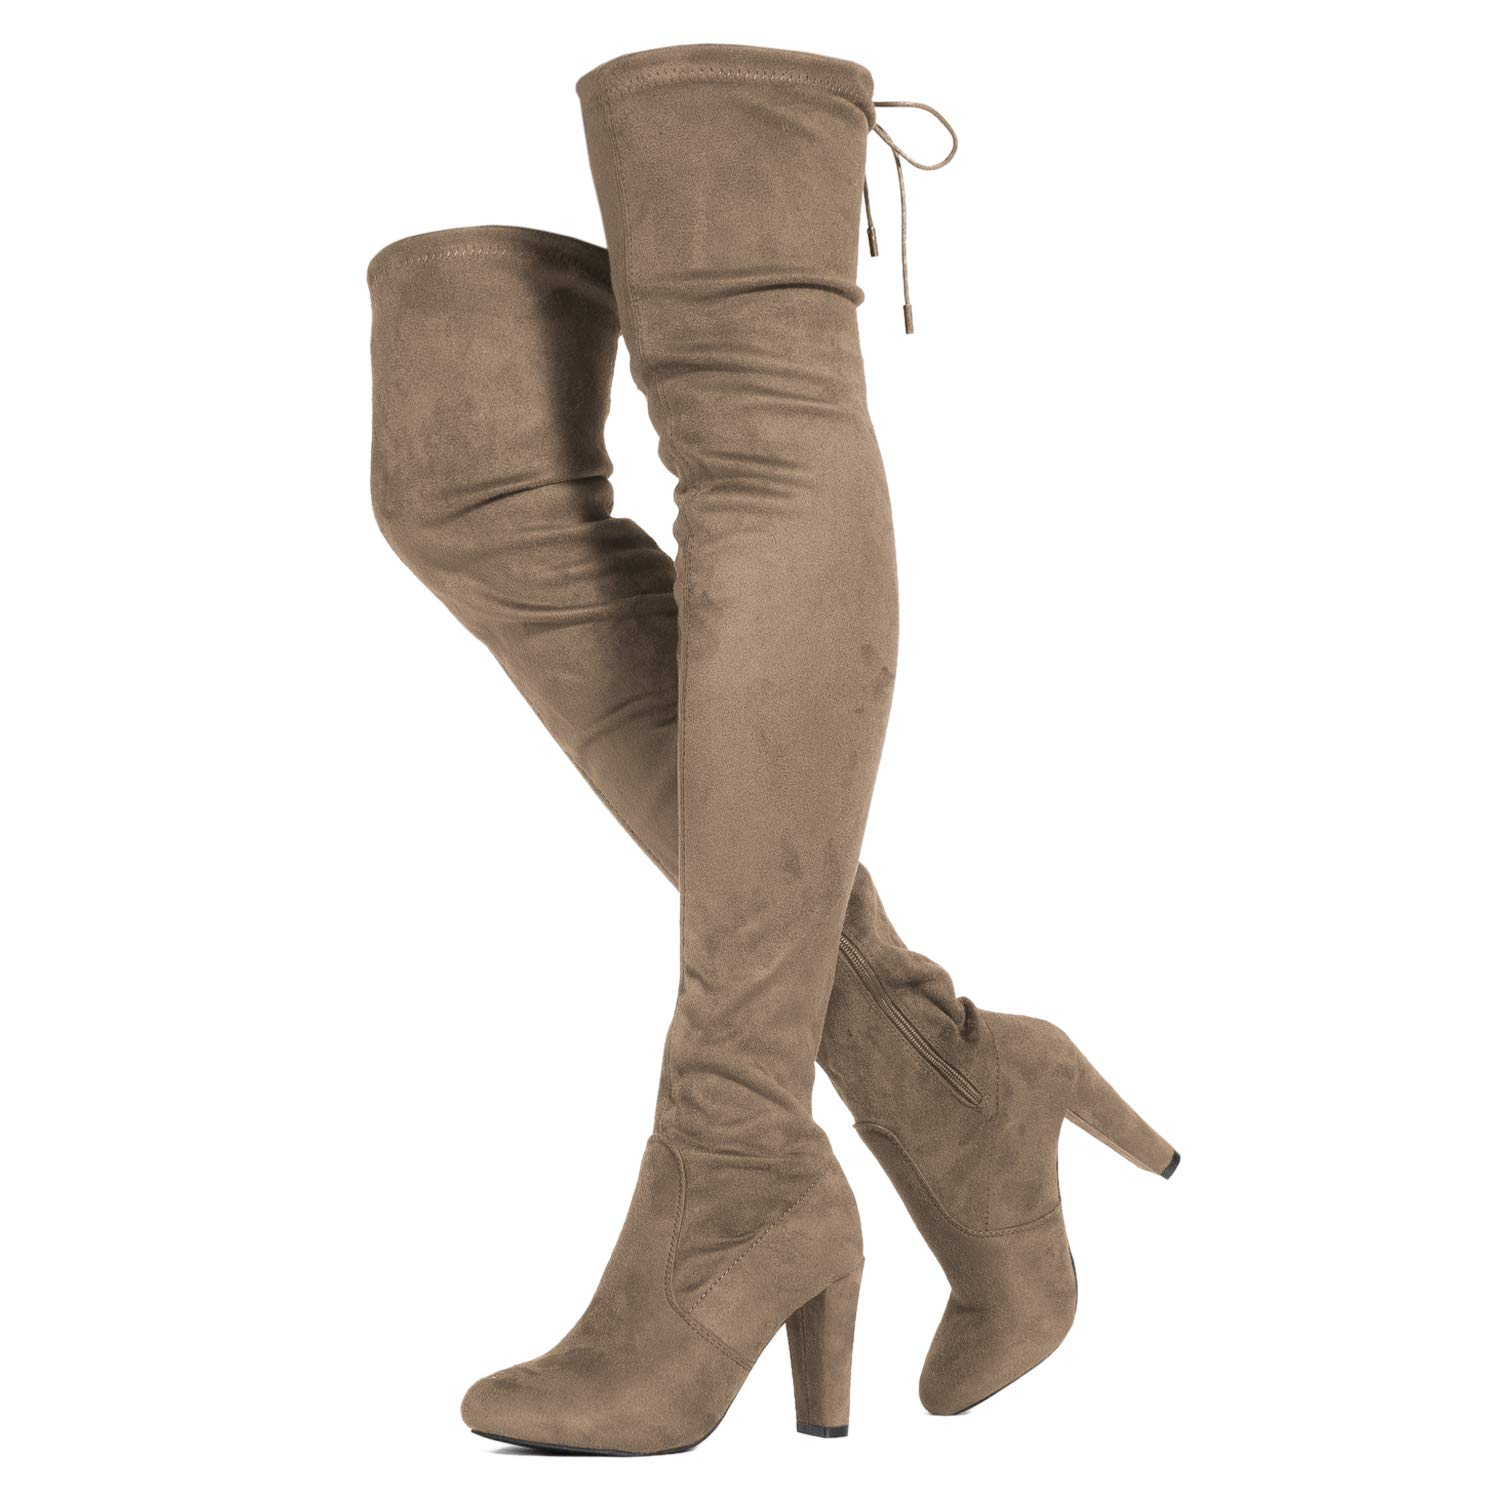 Taupe Suede - With Free shoeslace ROF Women's Fashion Comfy Vegan Suede Block Heel Side Zipper Thigh High Over The Knee Boots